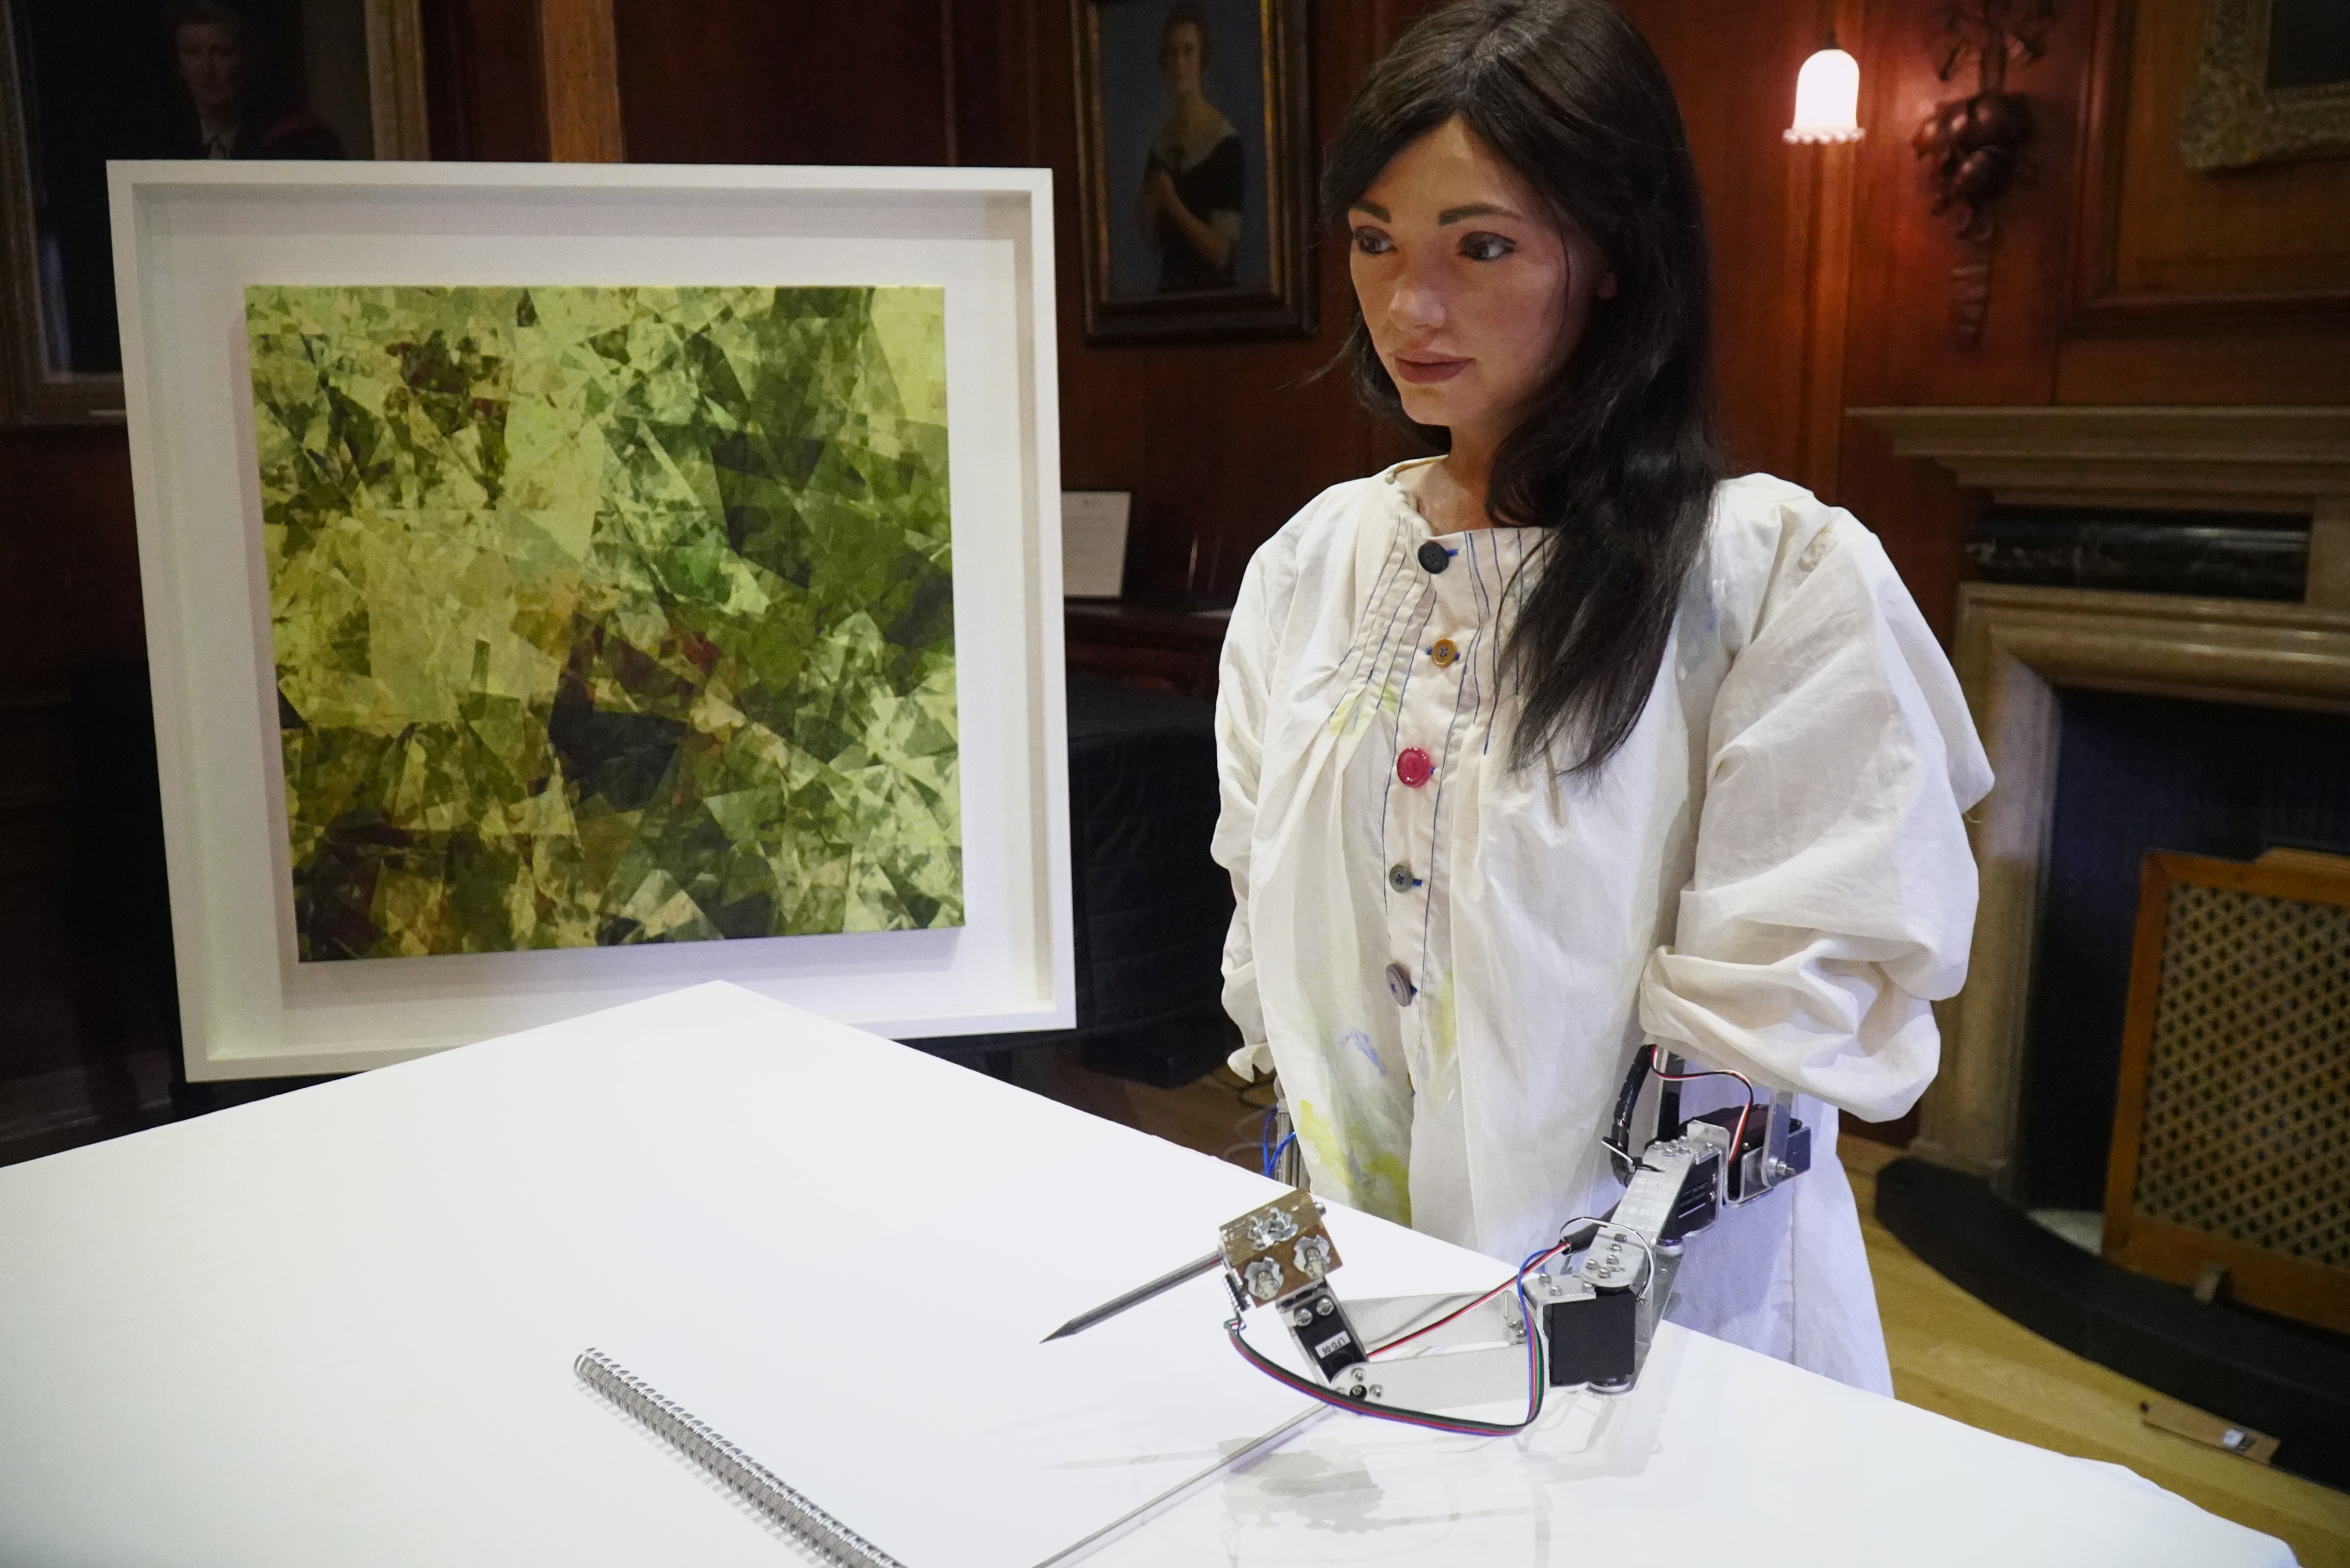 Robot artist 'Ai-Da' sketches using a pencil attached to her robotic arm, while standing next to a painting based on her computer vision data when run through algorithms developed by computer scientists in Oxford, Britain, June 4, 2019.